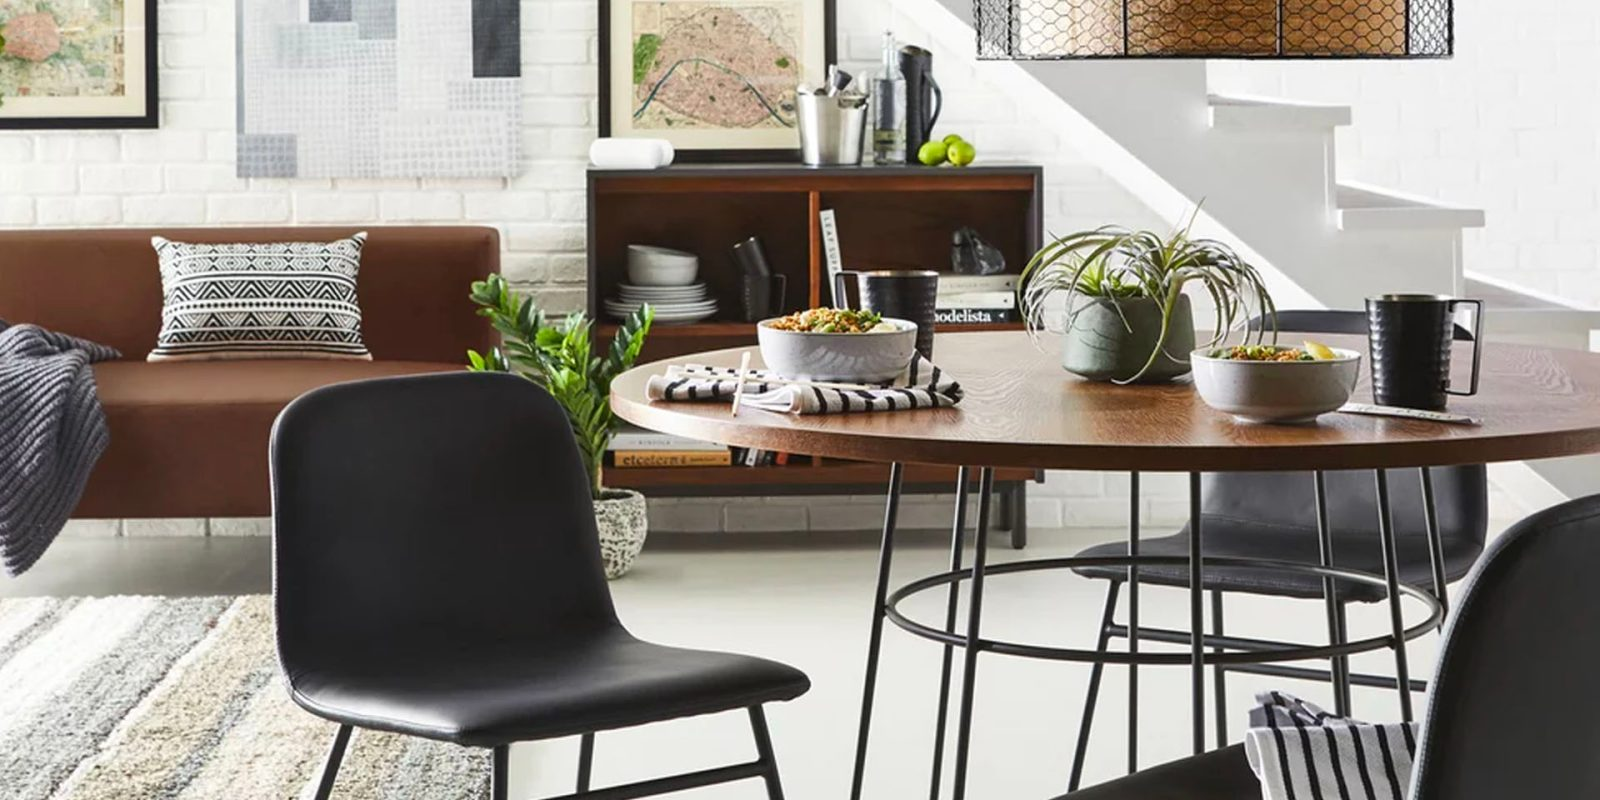 Walmart Announces New Modern Line Of Affordable Furniture 9to5toys